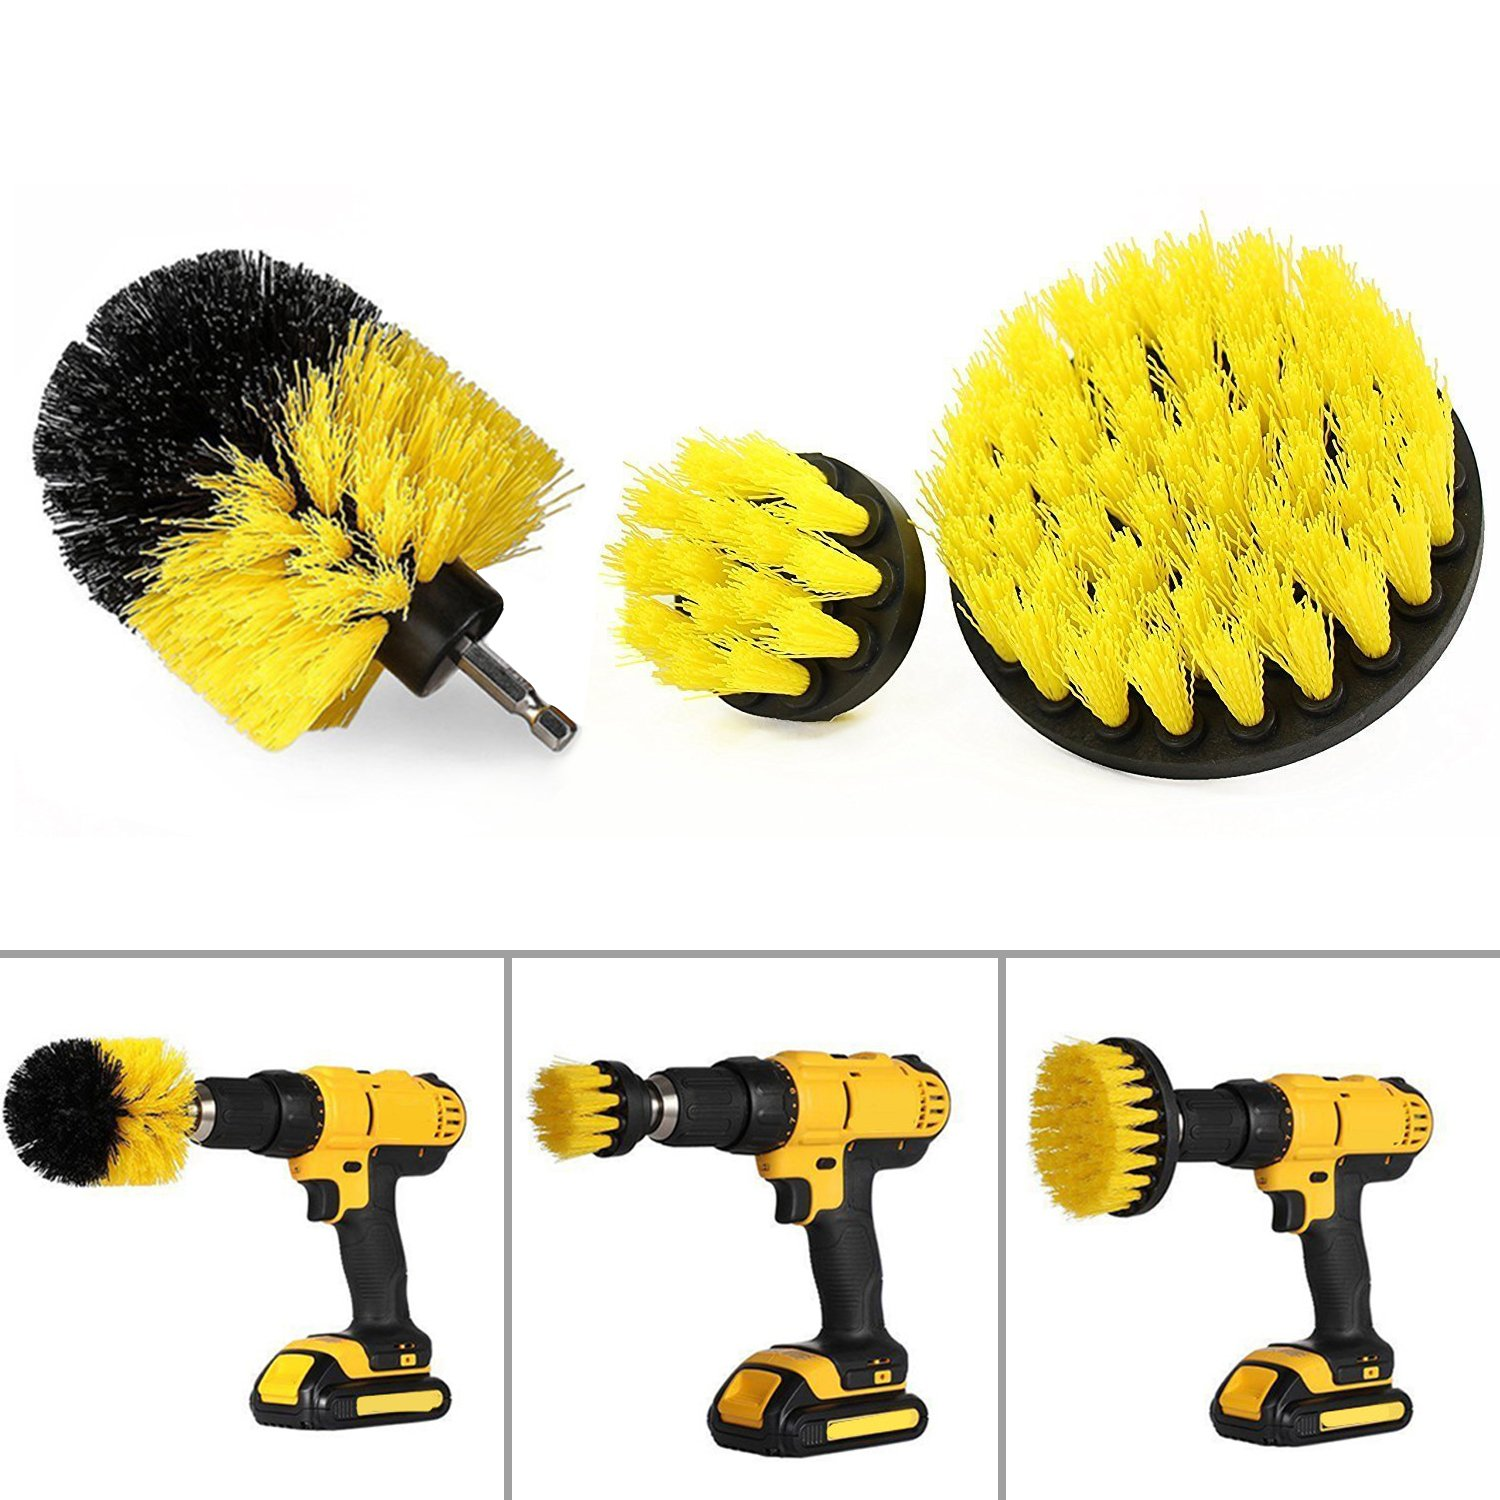 Cleaning Tools ScrubBrushDrillAttachmentKit-FRMARCH3packAllPurposePowerScrubberBrushCleanerforBathroomsurface,Grout,Tile,Tub,Shower,Kitchen, Health & Personal Care